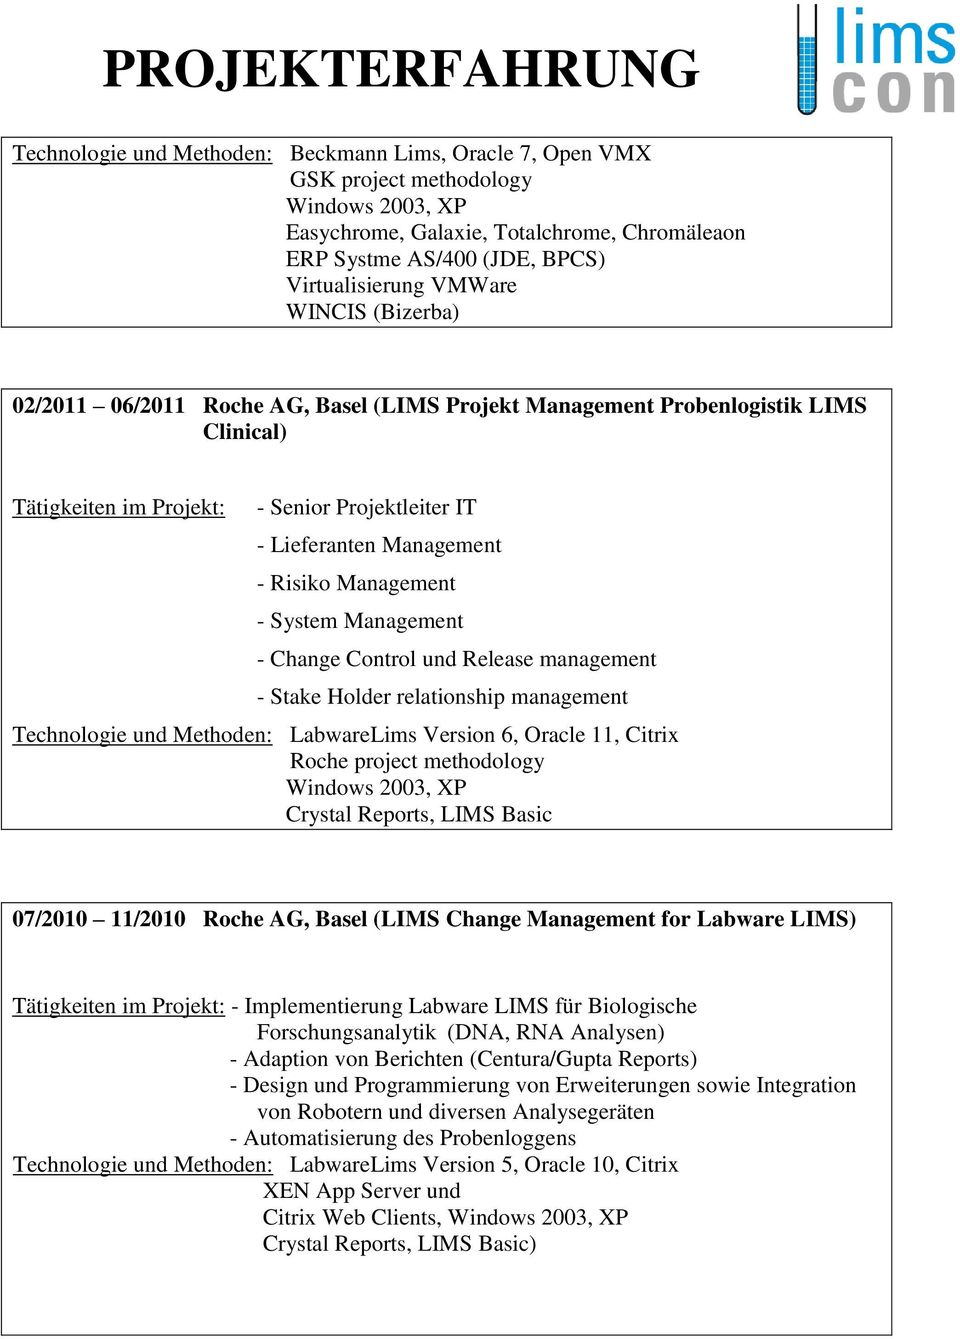 Change Control und Release management - Stake Holder relationship management Technologie und Methoden: LabwareLims Version 6, Oracle 11, Citrix Roche project methodology Windows 2003, XP Crystal